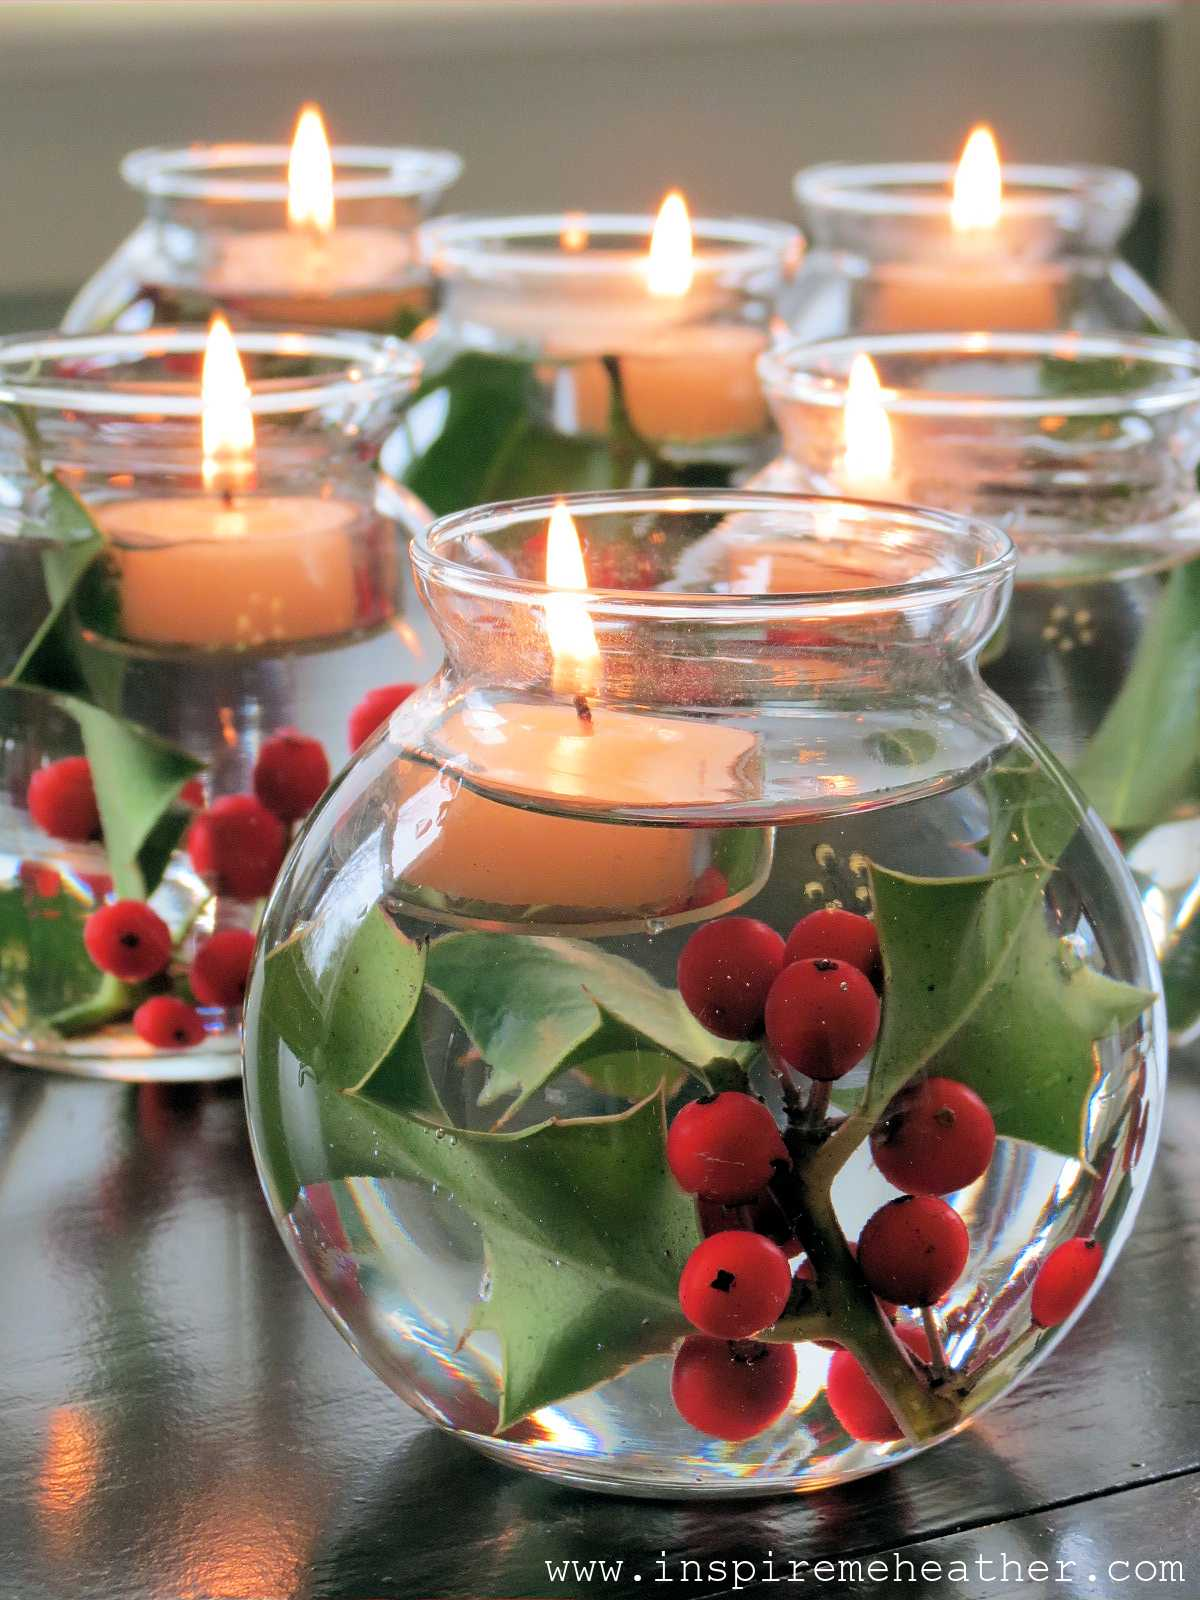 Diy Christmas Centerpiece : Easy last minute diy christmas decorations style